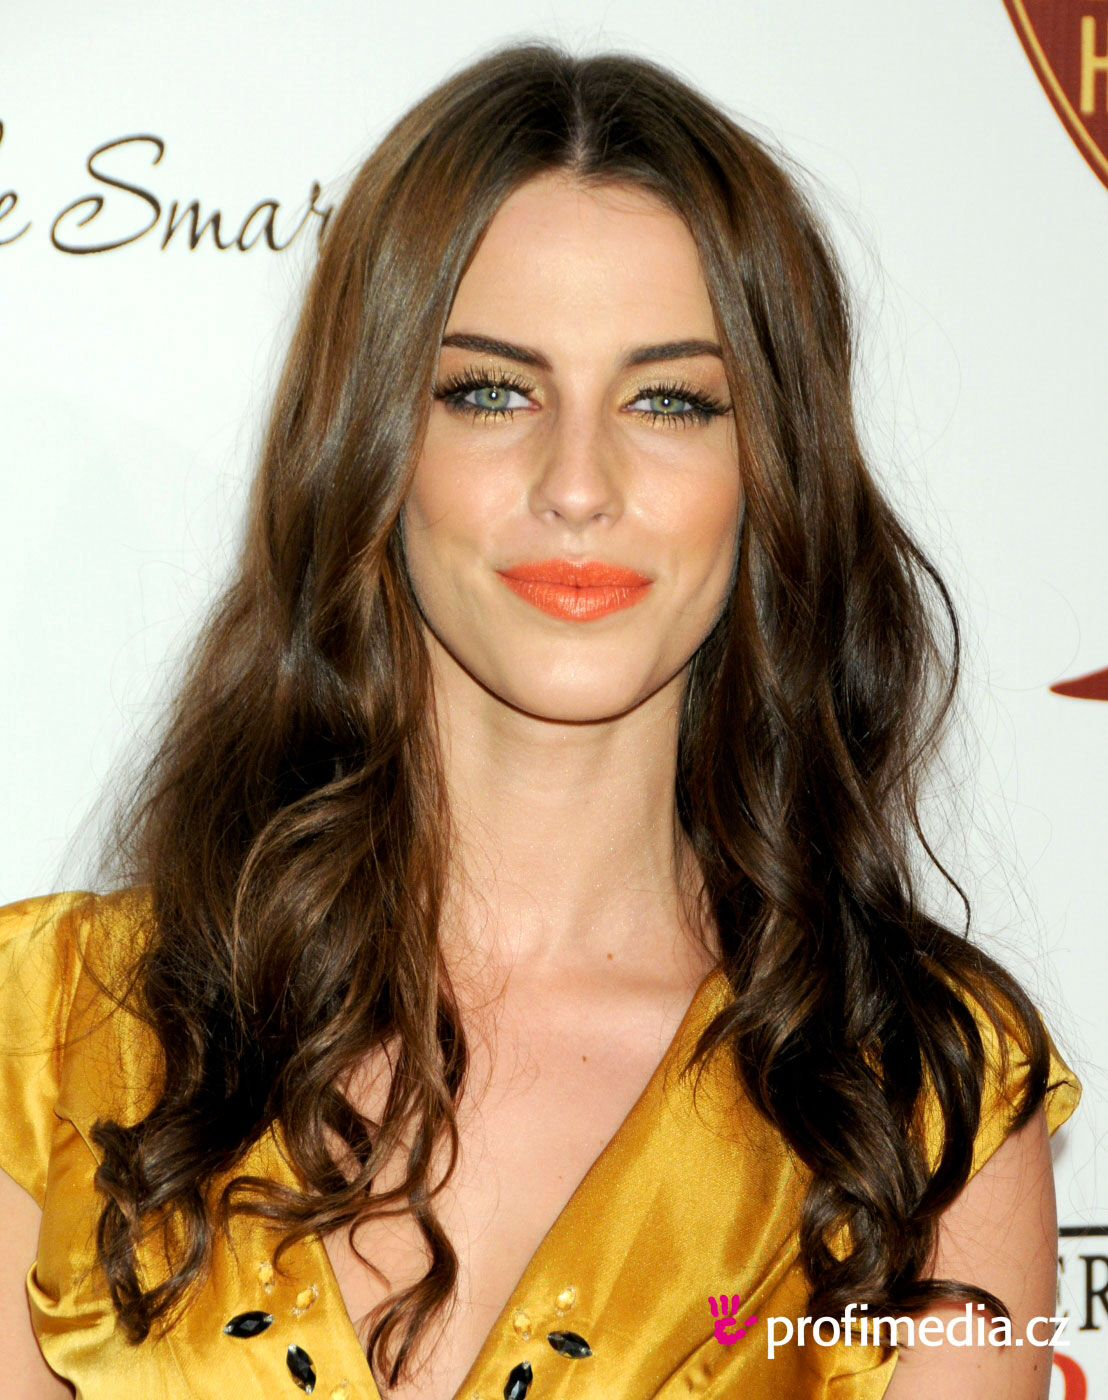 jessica lowndes | hair & nails in 2019 | jessica lowndes